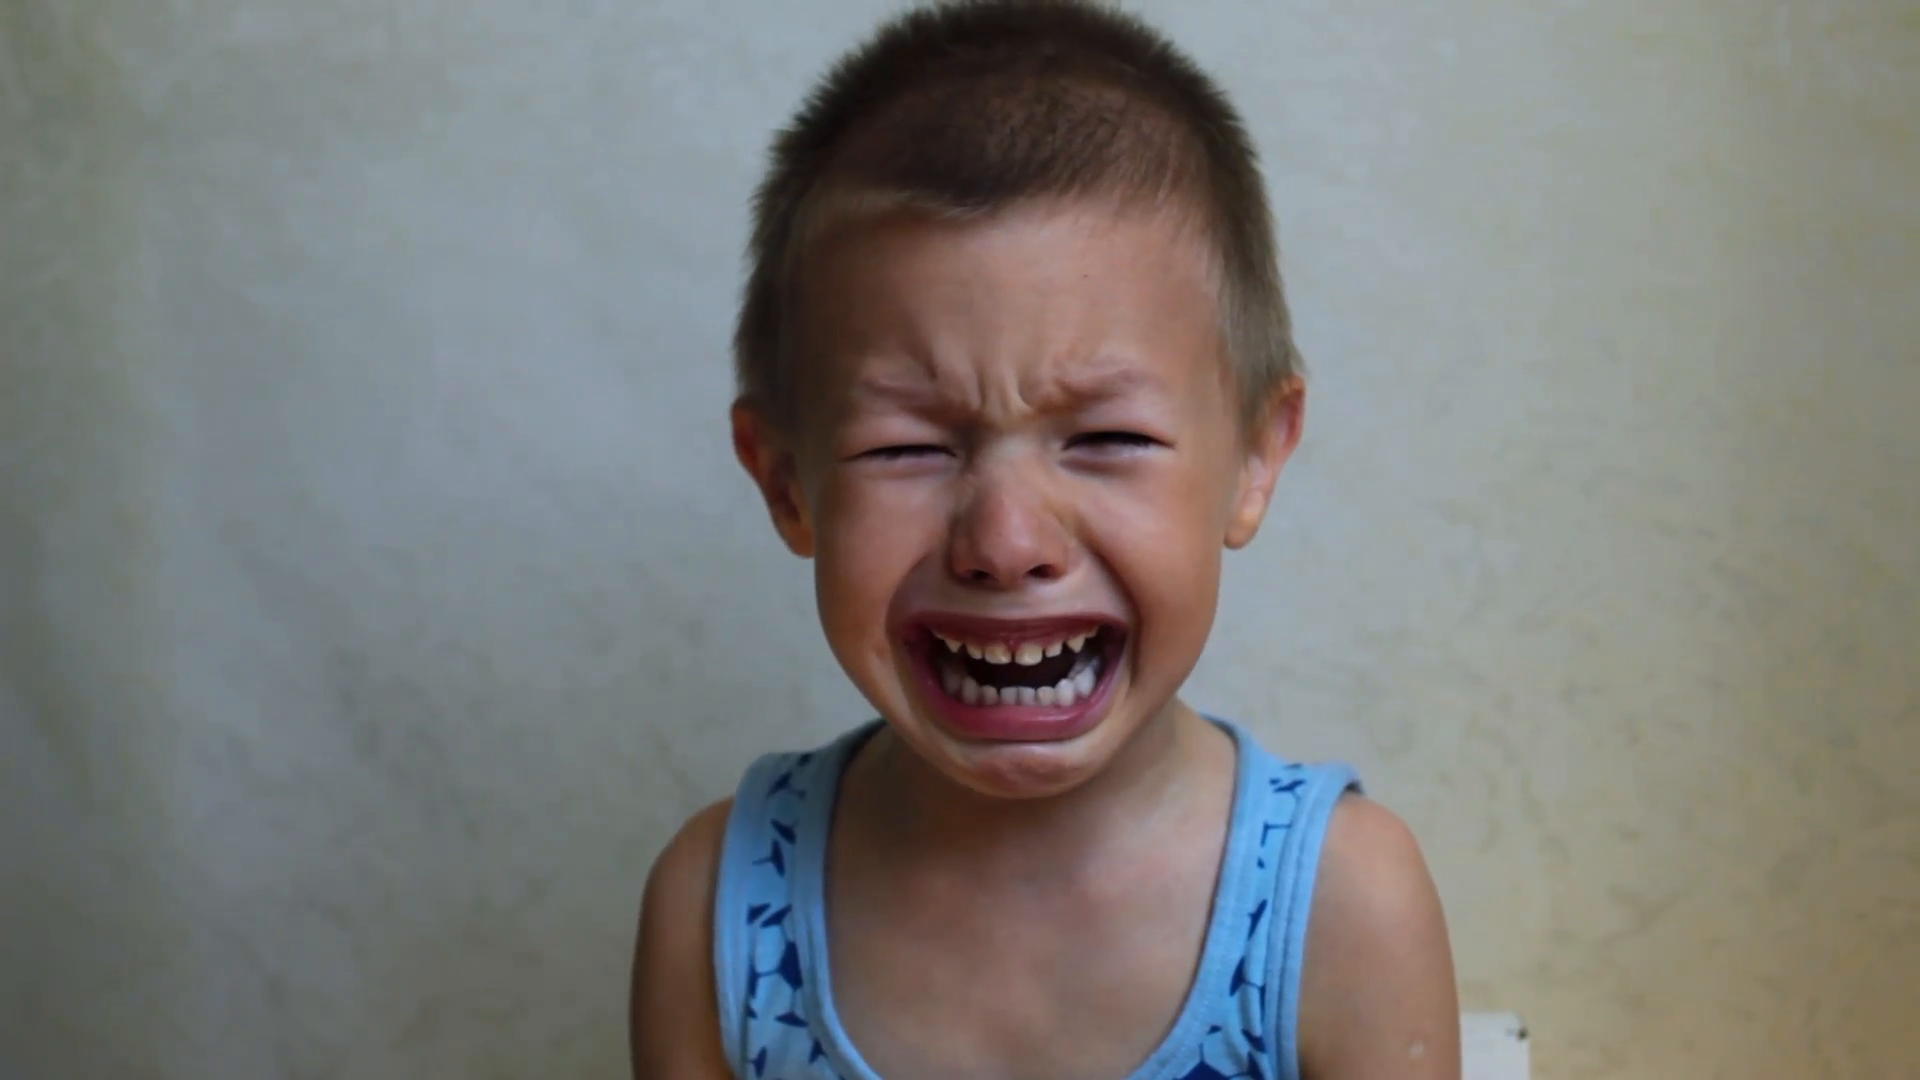 Child Boy Crying Bitterly 2 Stock Video Footage - Videoblocks